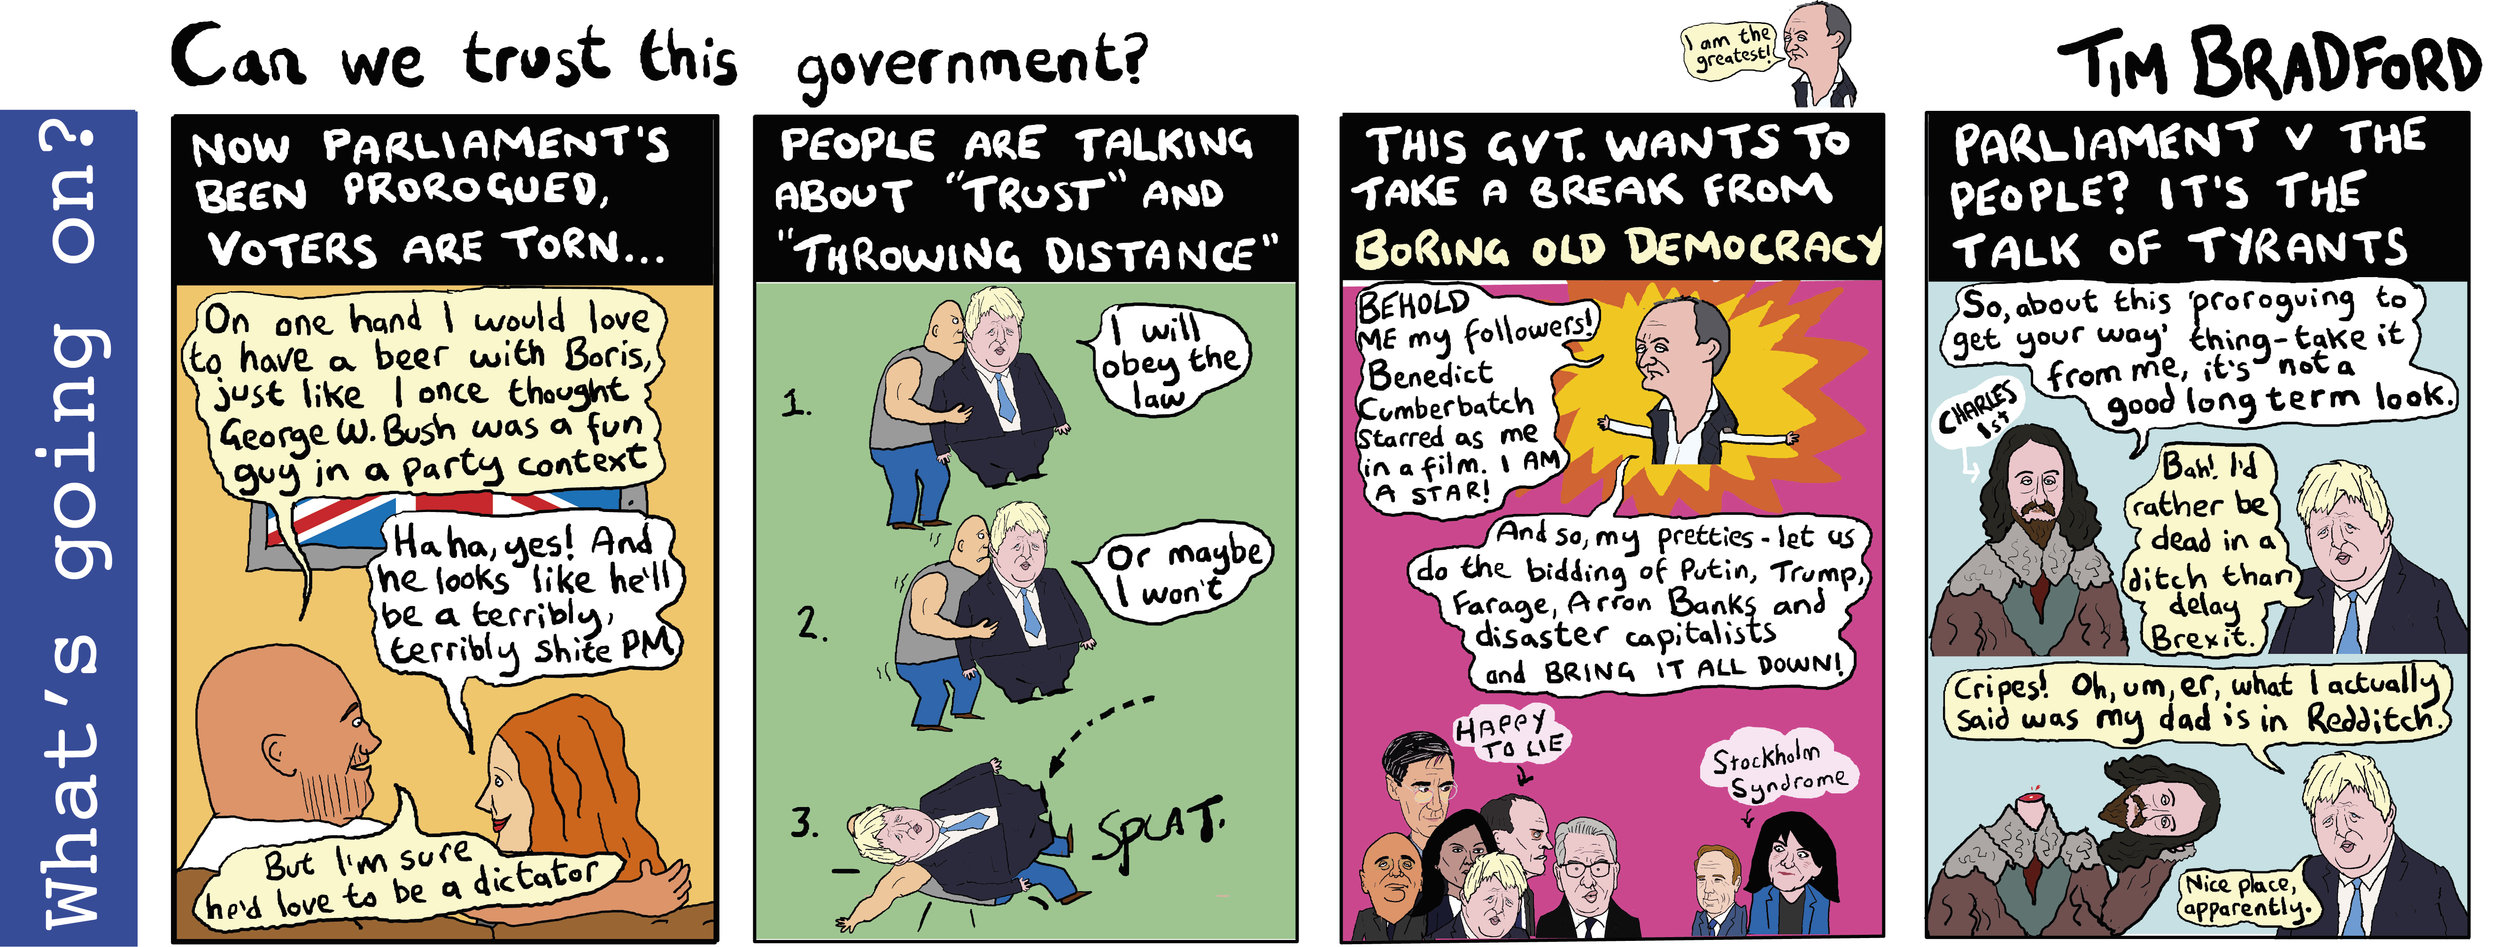 Can we trust this government? - 10/09/2019